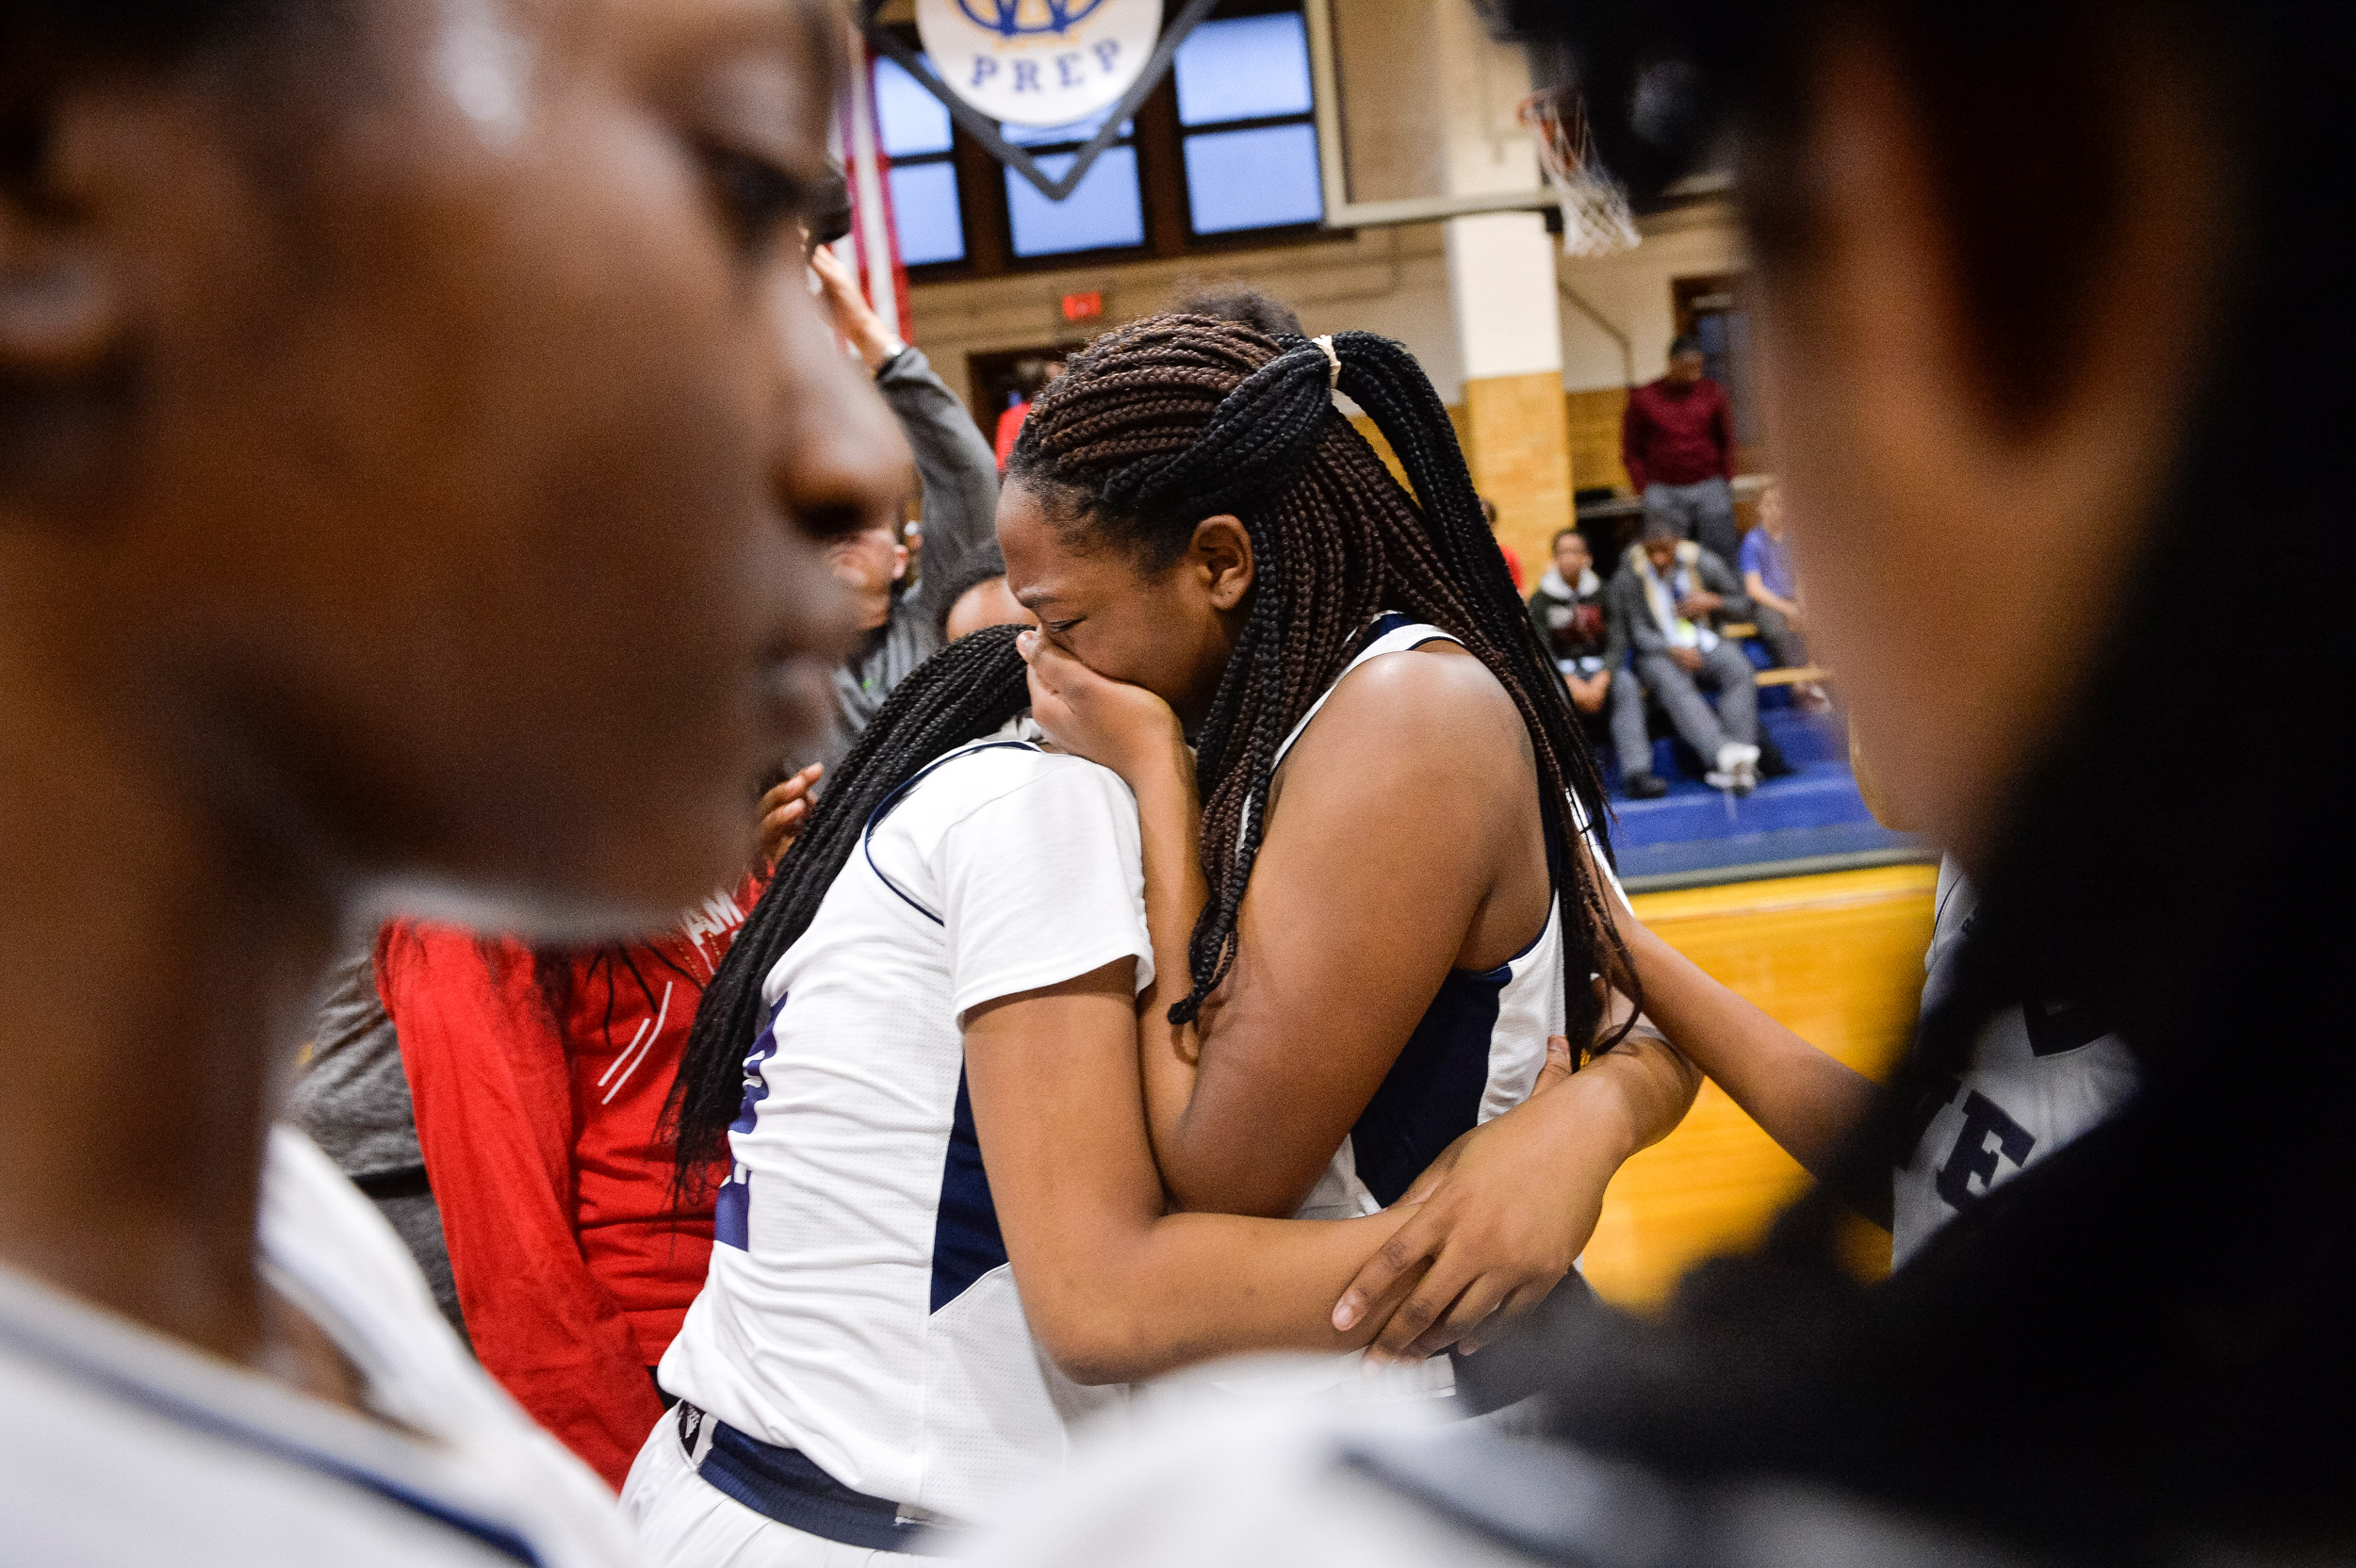 West Catholic girls basketball player Morgan Kennedy cries and is hugged by a teammate after a ceremony to honor Akyra Murray during the team's first home game. Pulse nightclub shooting victim Akyra Murray graduated from West Catholic just days before she was killed, and led her team to two district championships and scored over 1,000 points during her career at the school.